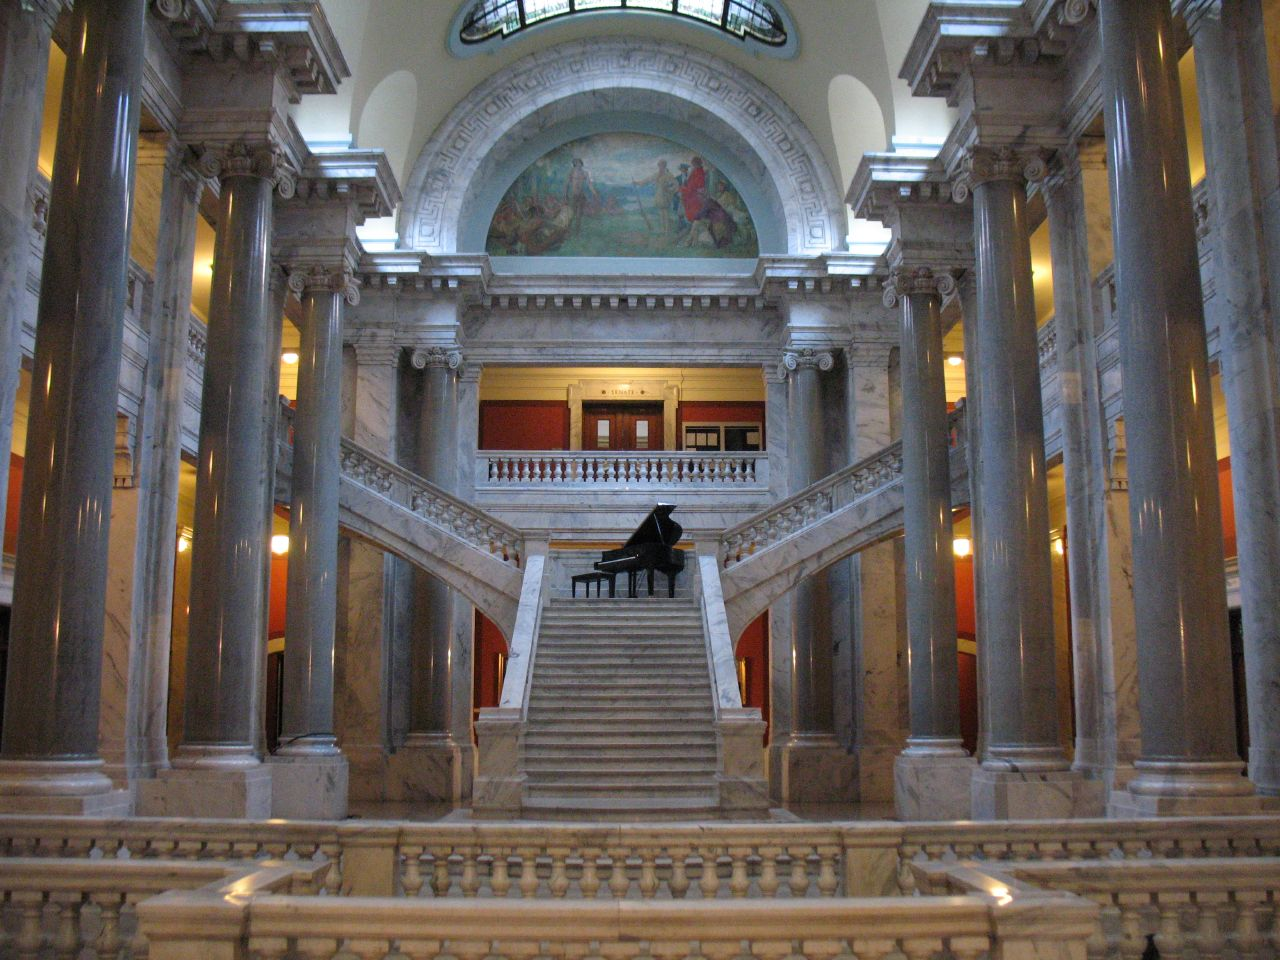 Interior of the Kentucky State Capitol. Image courtesy of Wikimedia Commons.